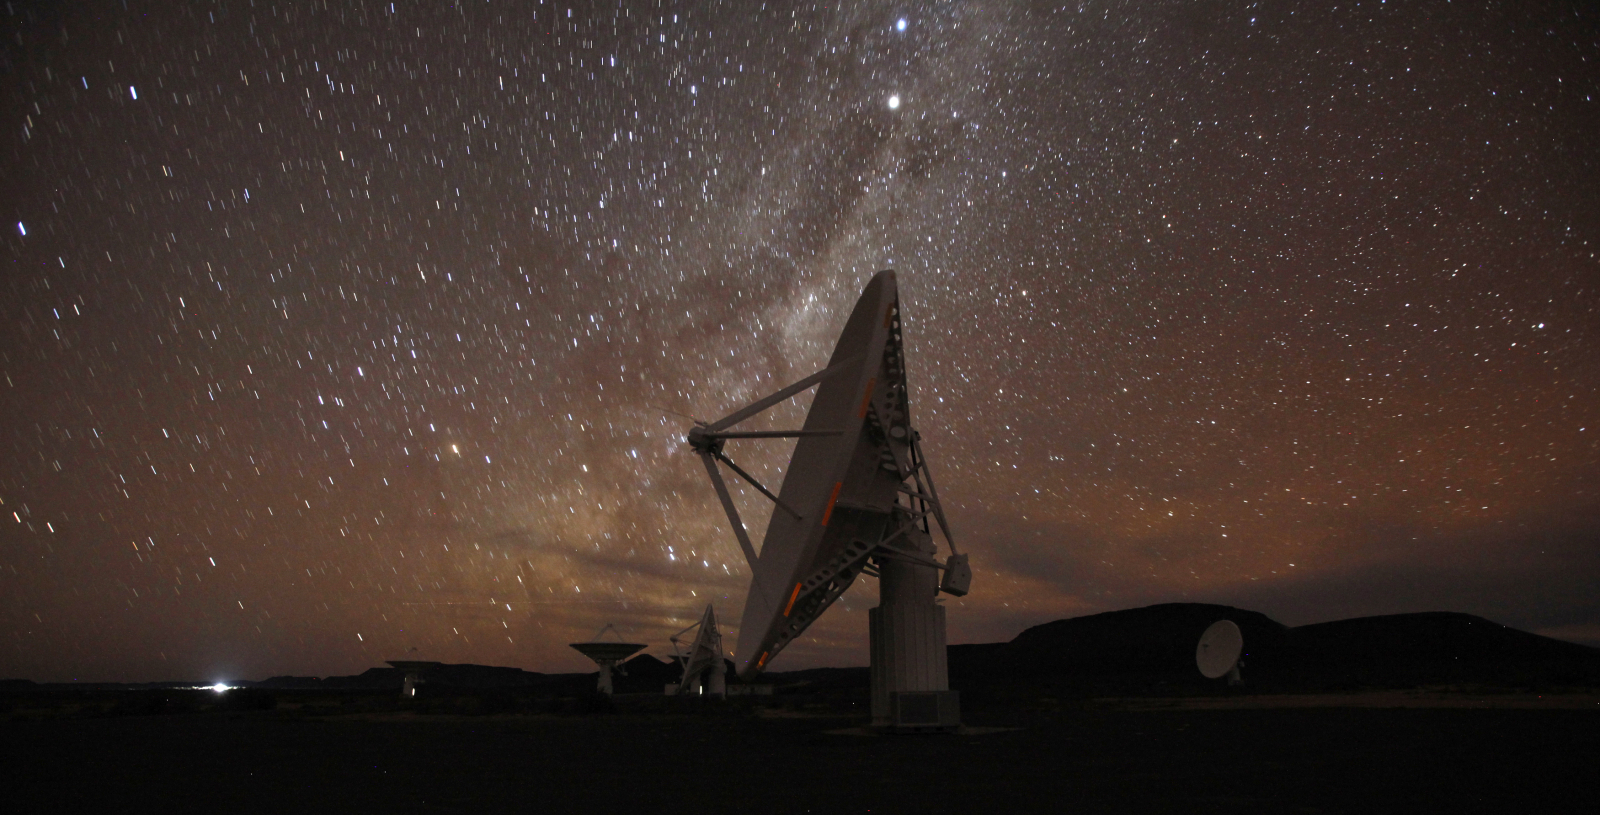 Exactly a year after, scientists detect mysterious radio signal from another galaxy